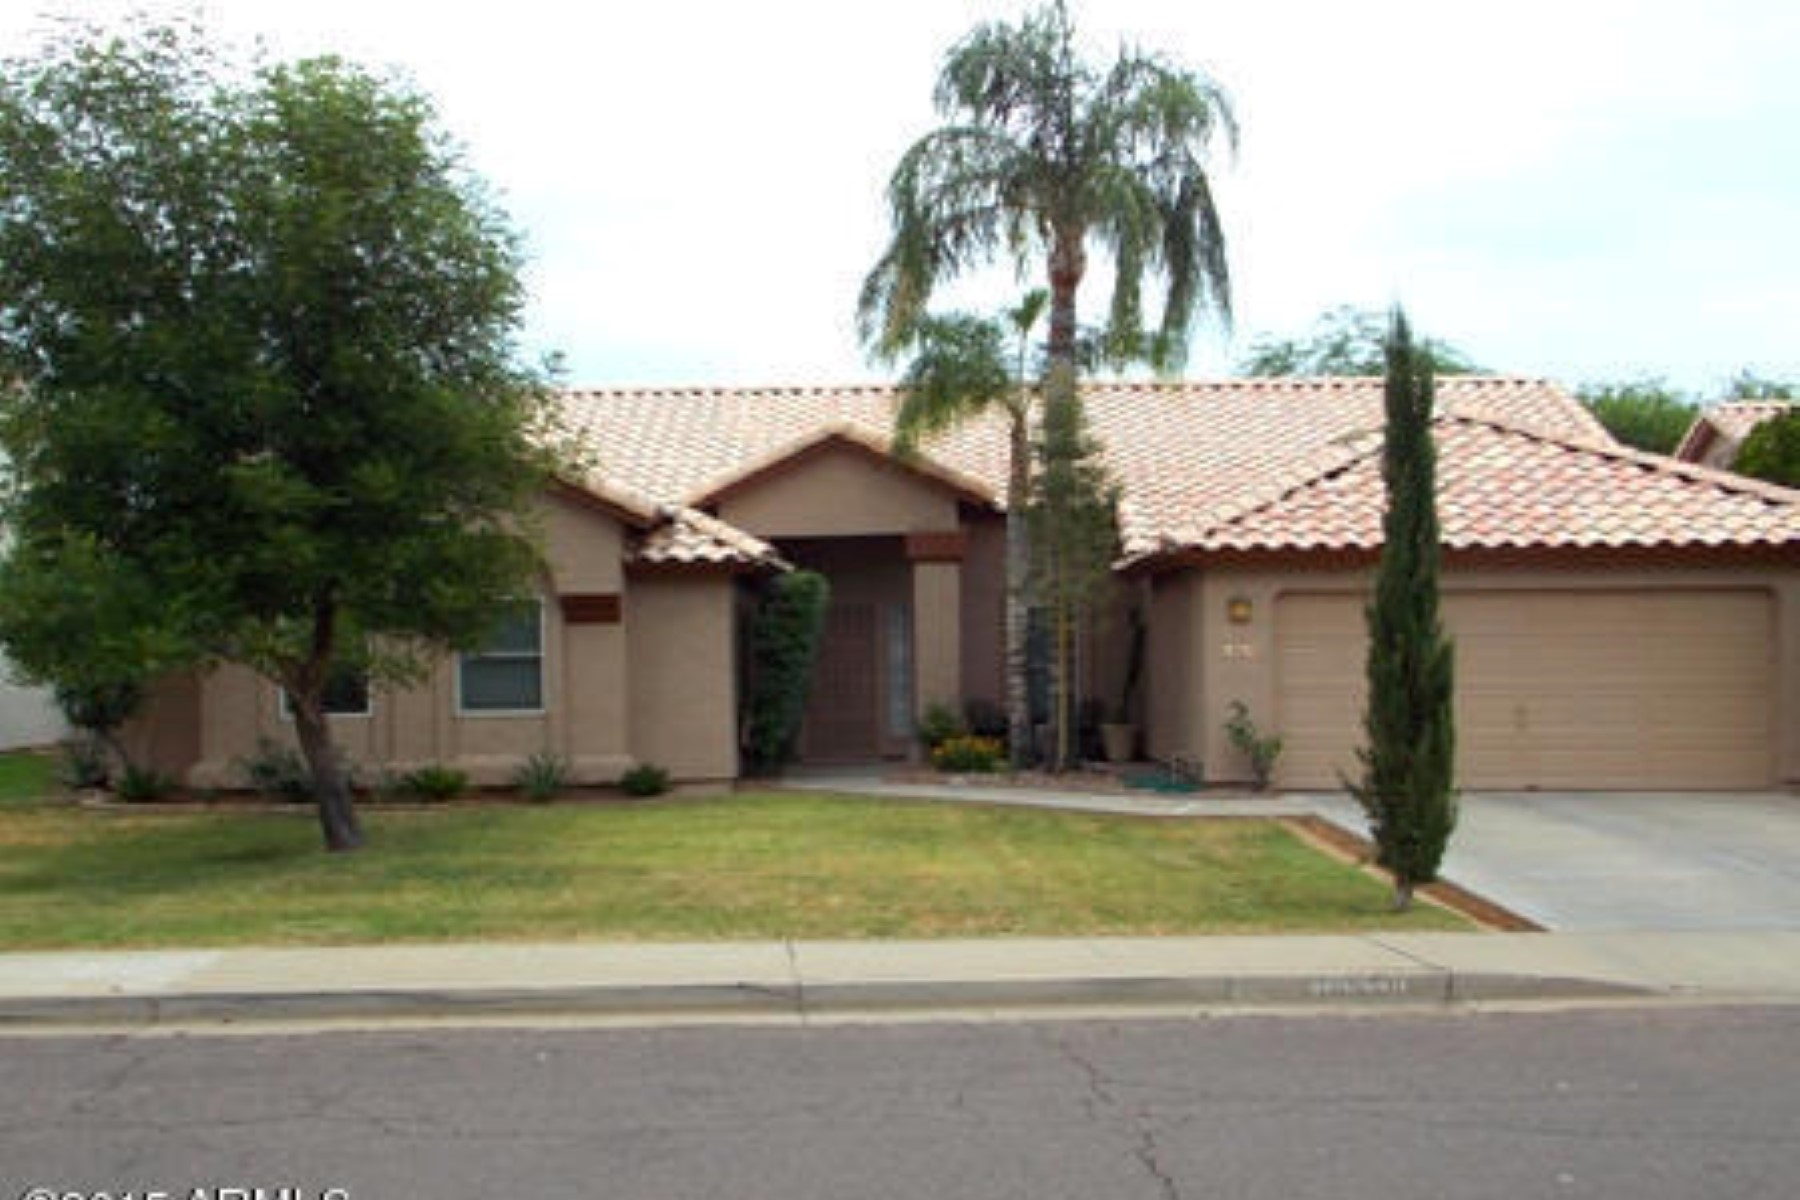 Single Family Home for Sale at Charming and updated in Paradise Valley Landings. 18659 N 41ST PL Phoenix, Arizona 85050 United States